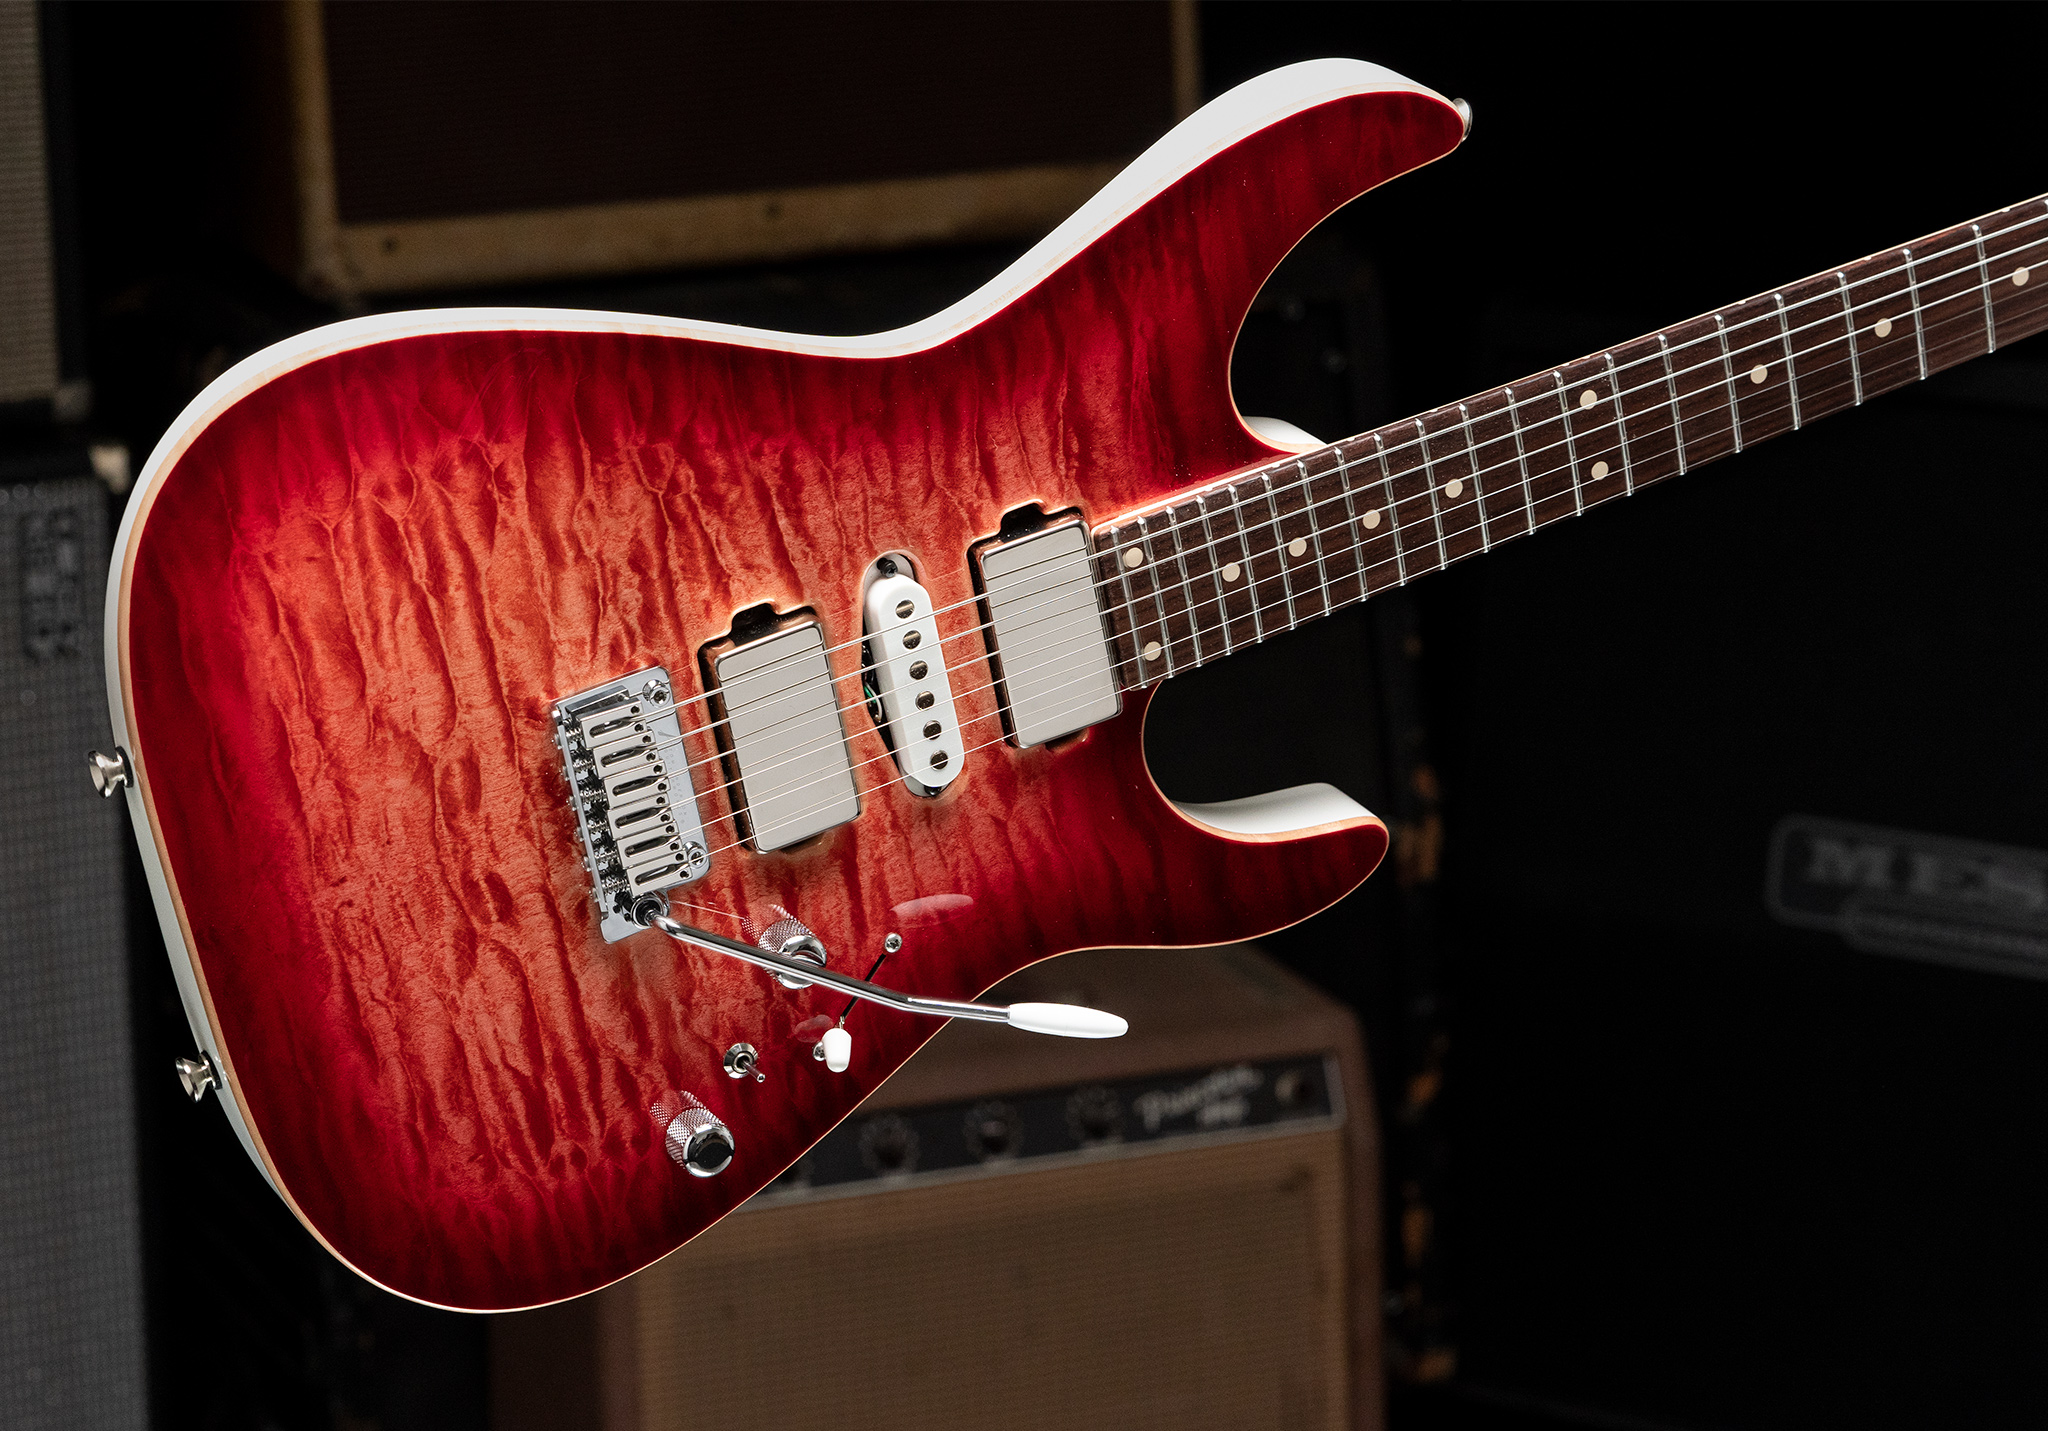 11-22-18N_ba_Angel_Natural Red Burst_white back.jpg